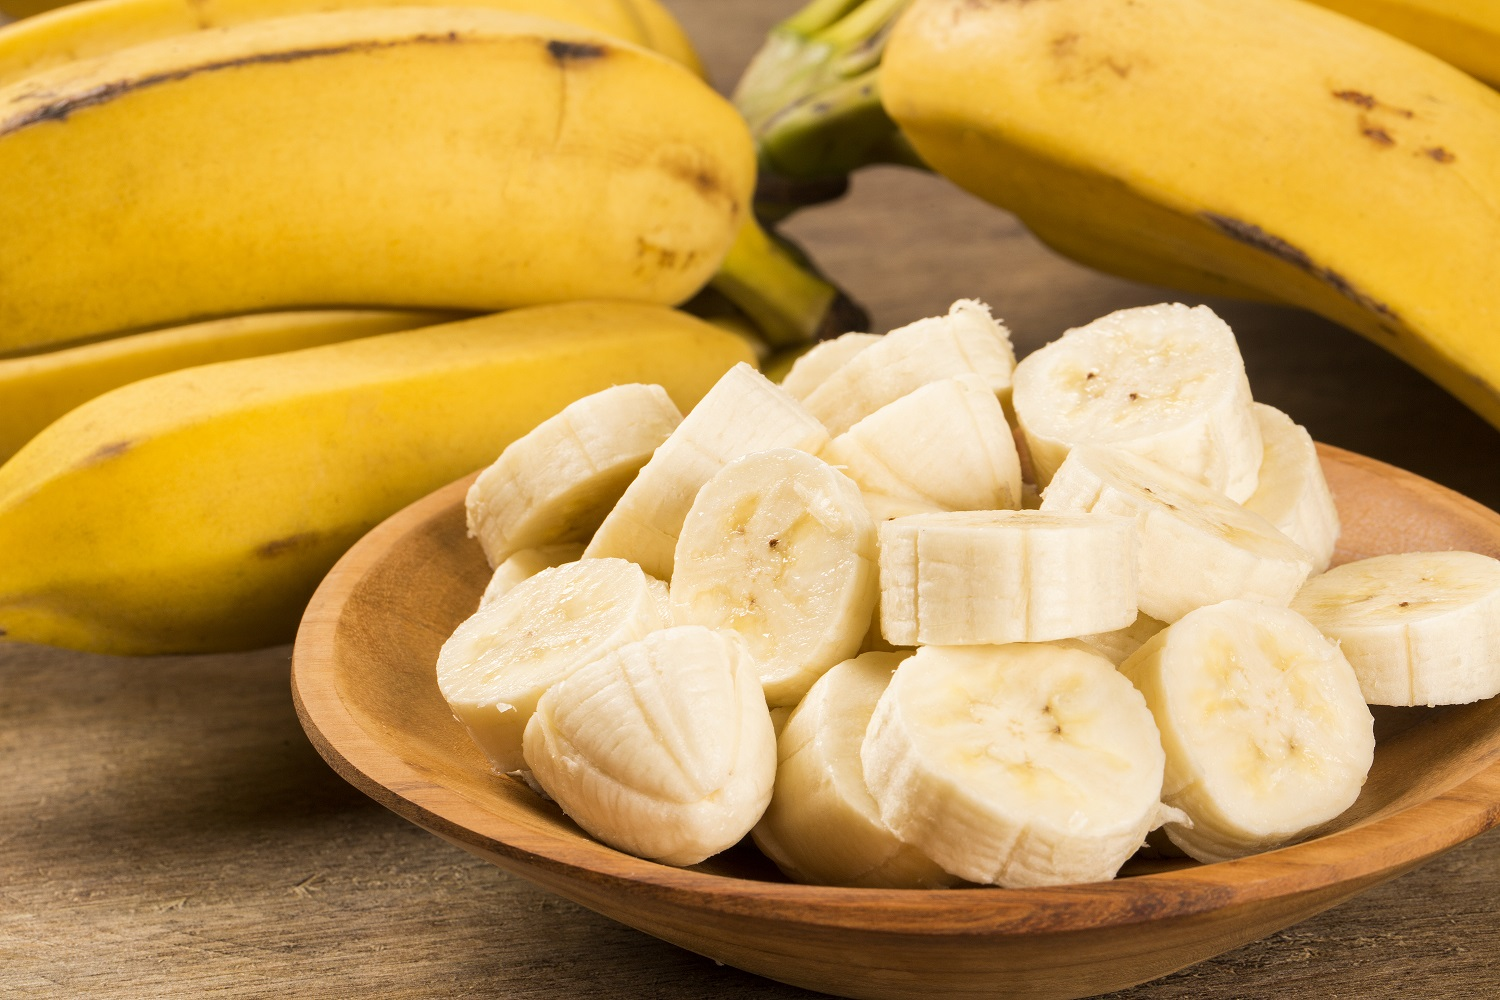 If you eat bananas for breakfast, we have some bummer news